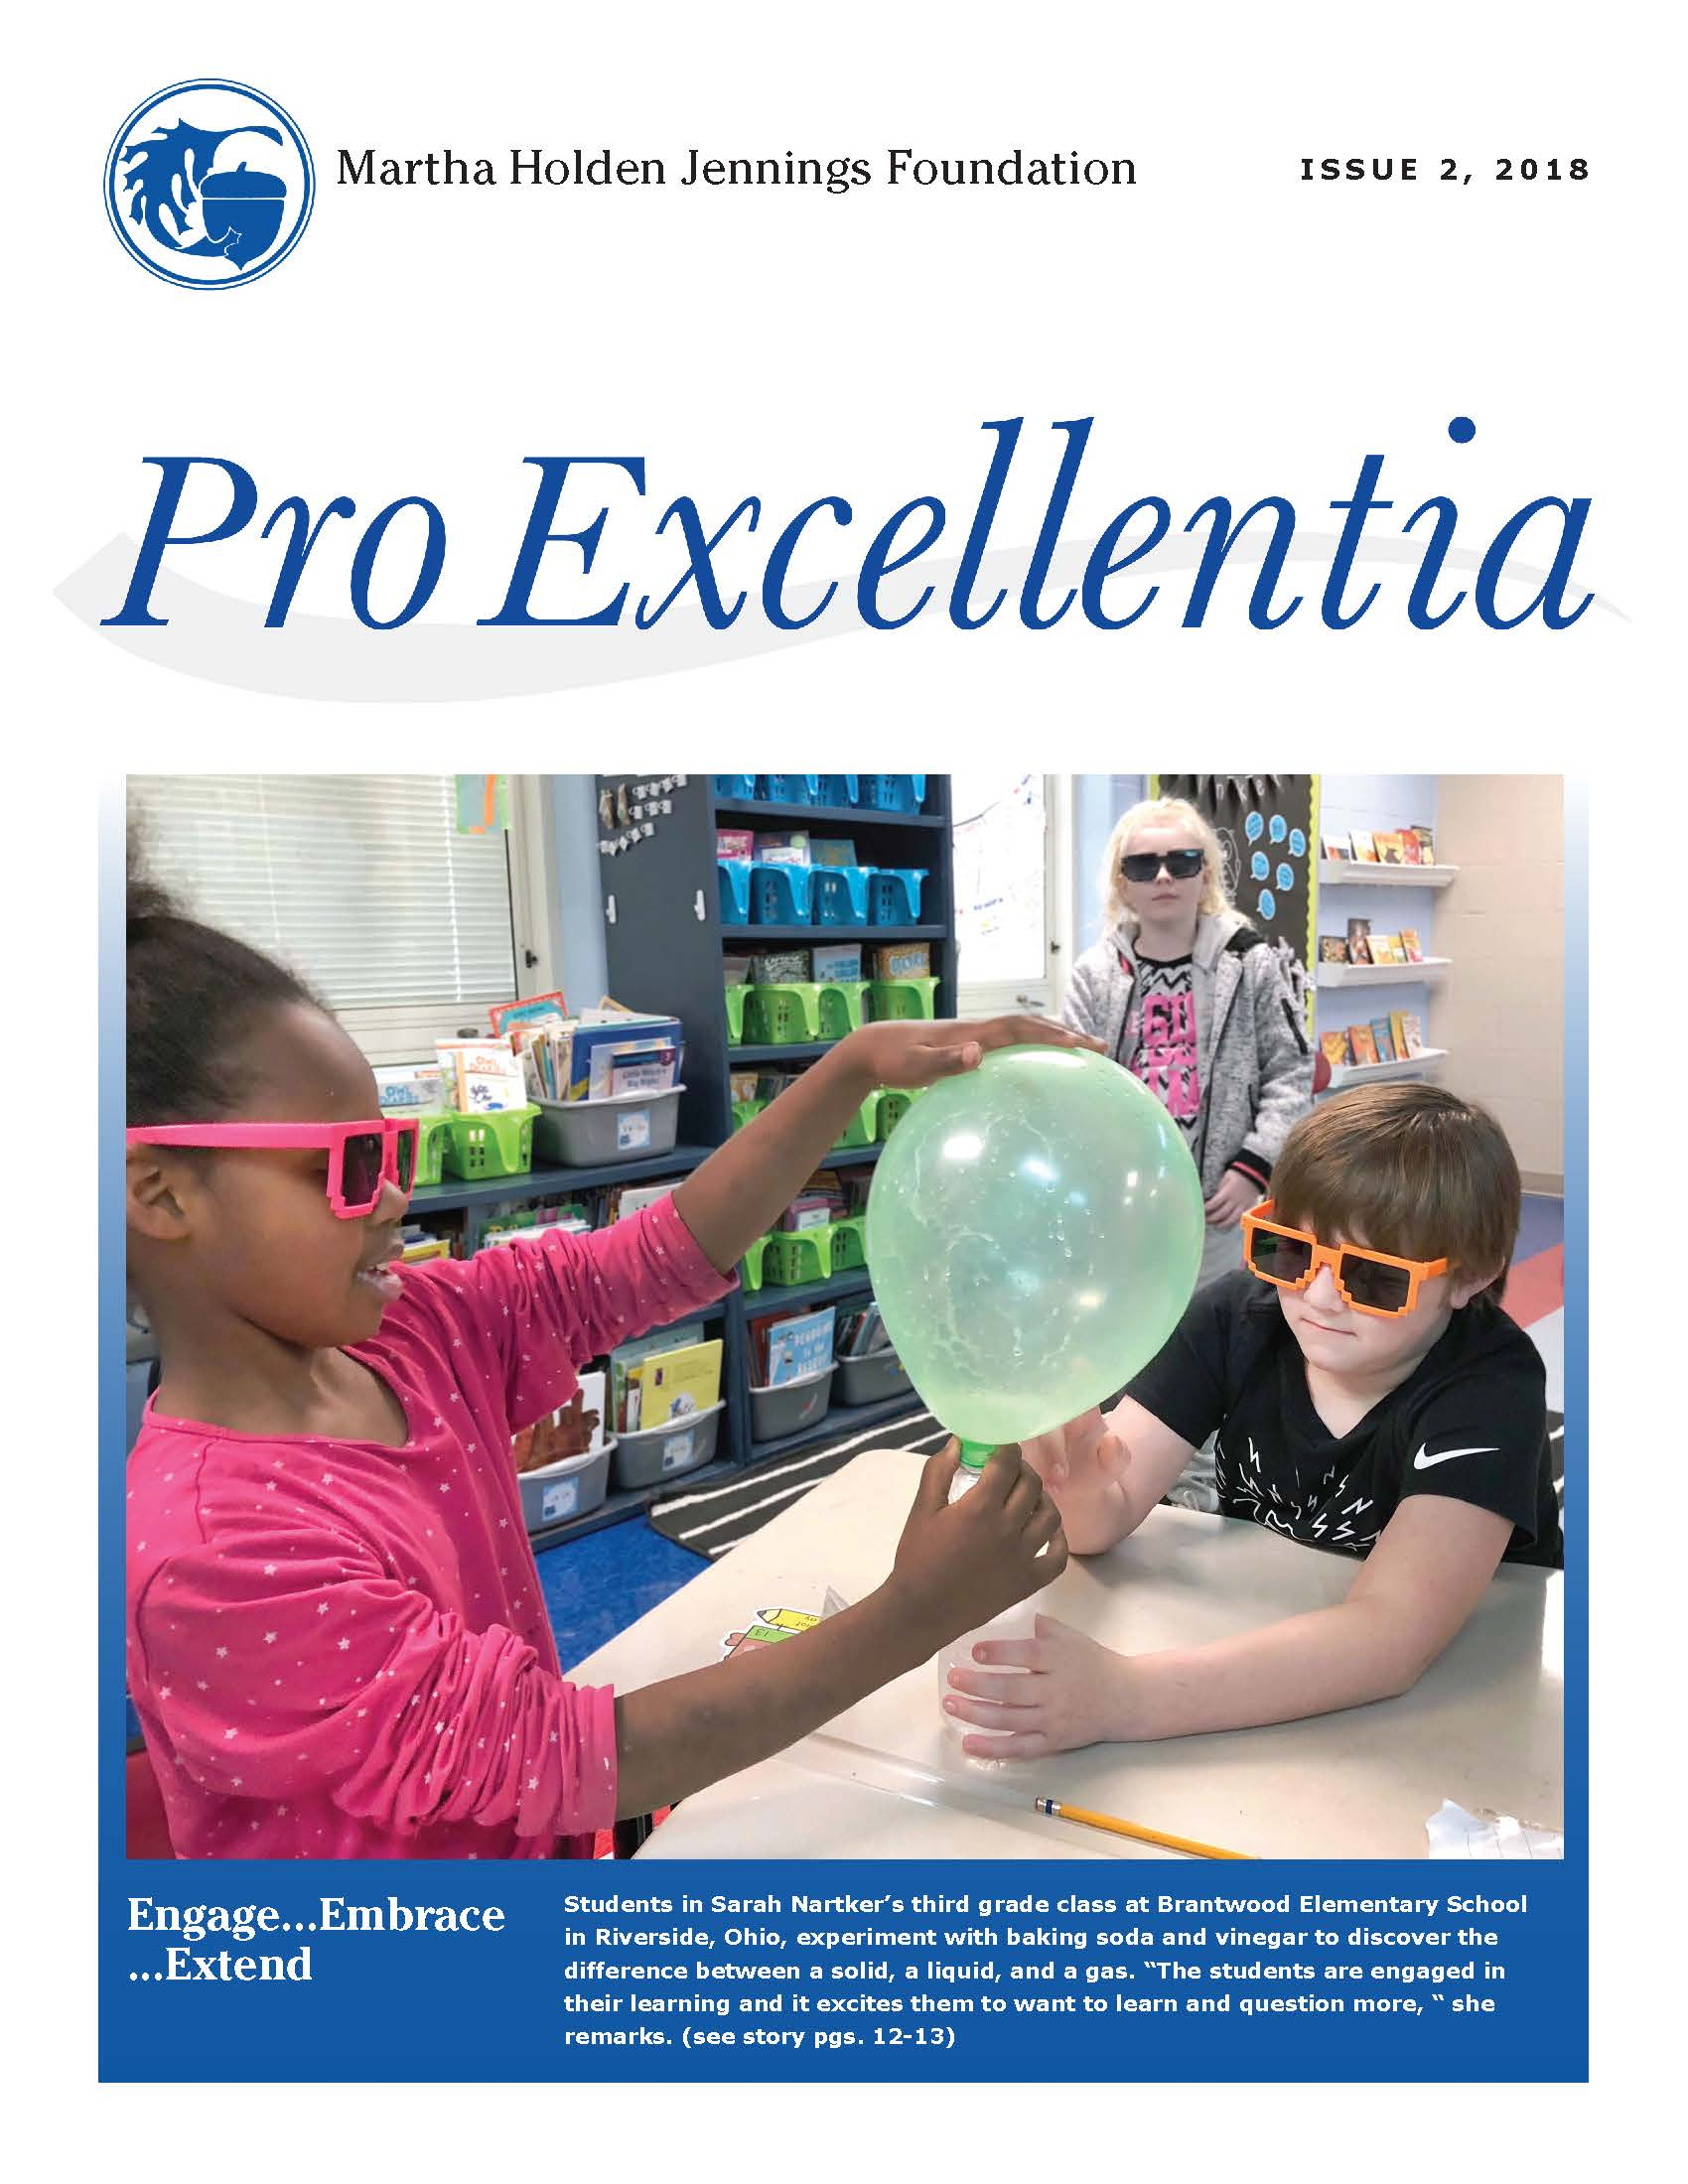 The Spring 2018 issue of our ProExcellentia Journal